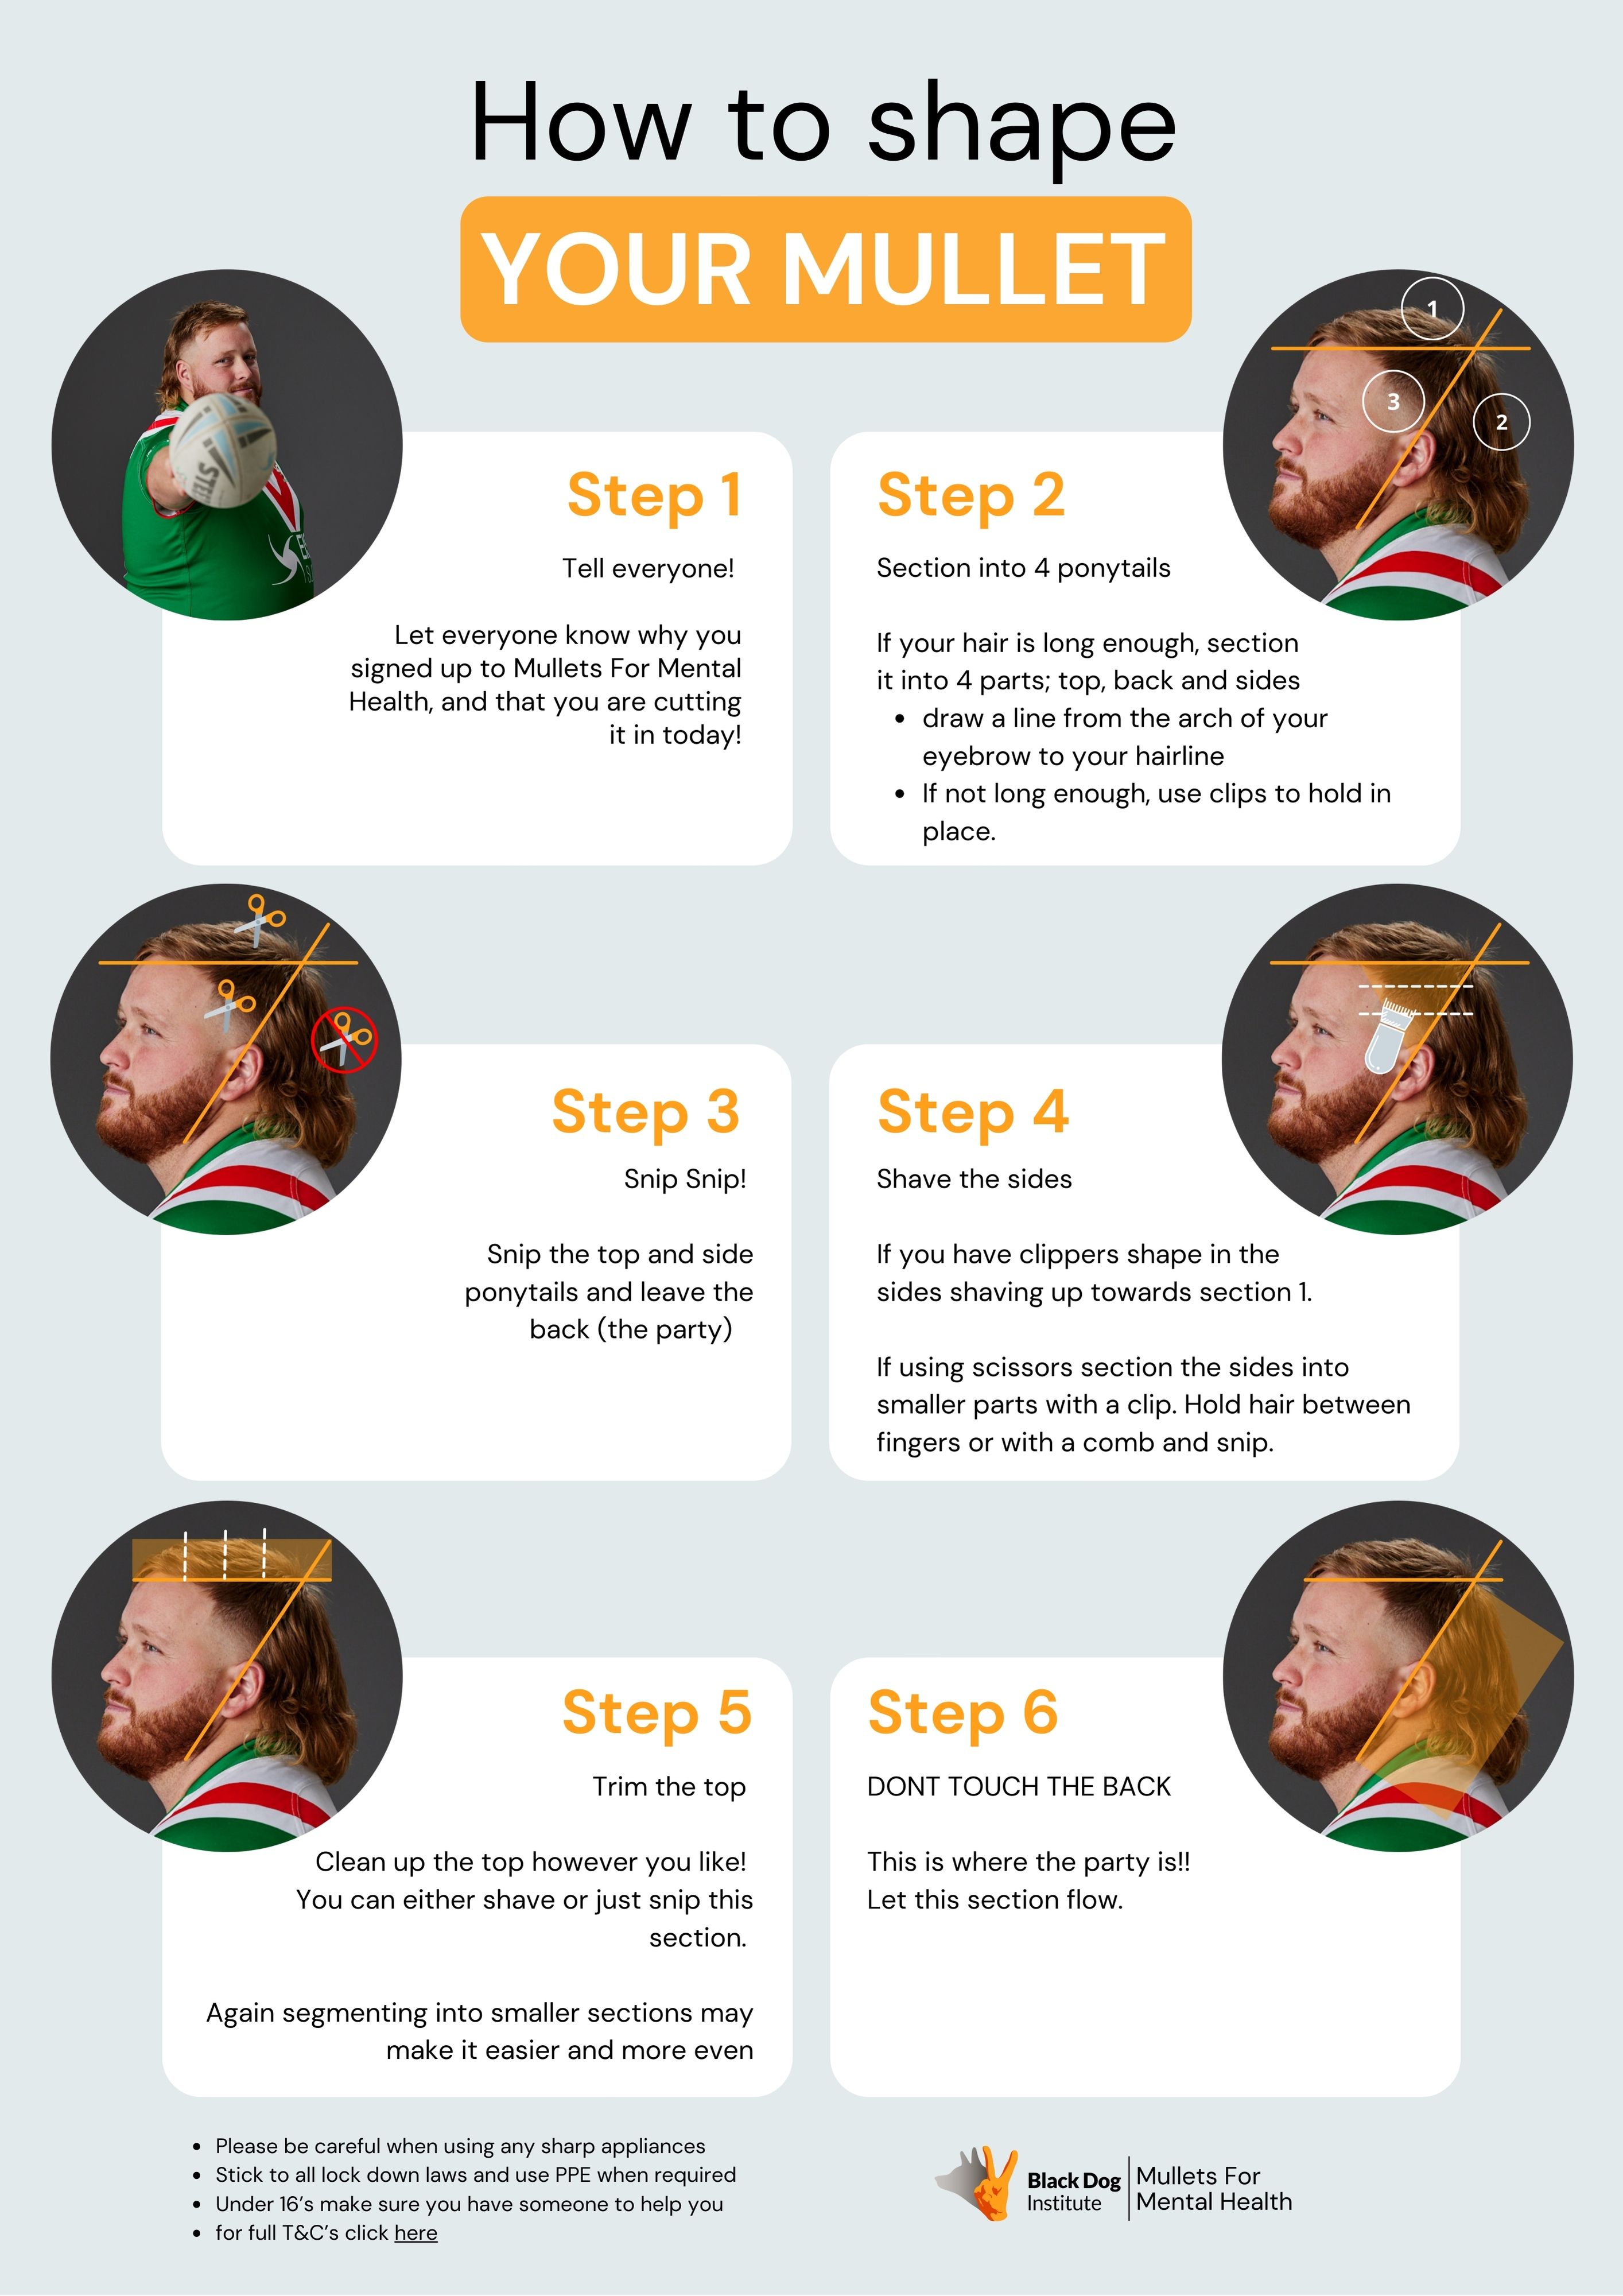 How to shape your mullet